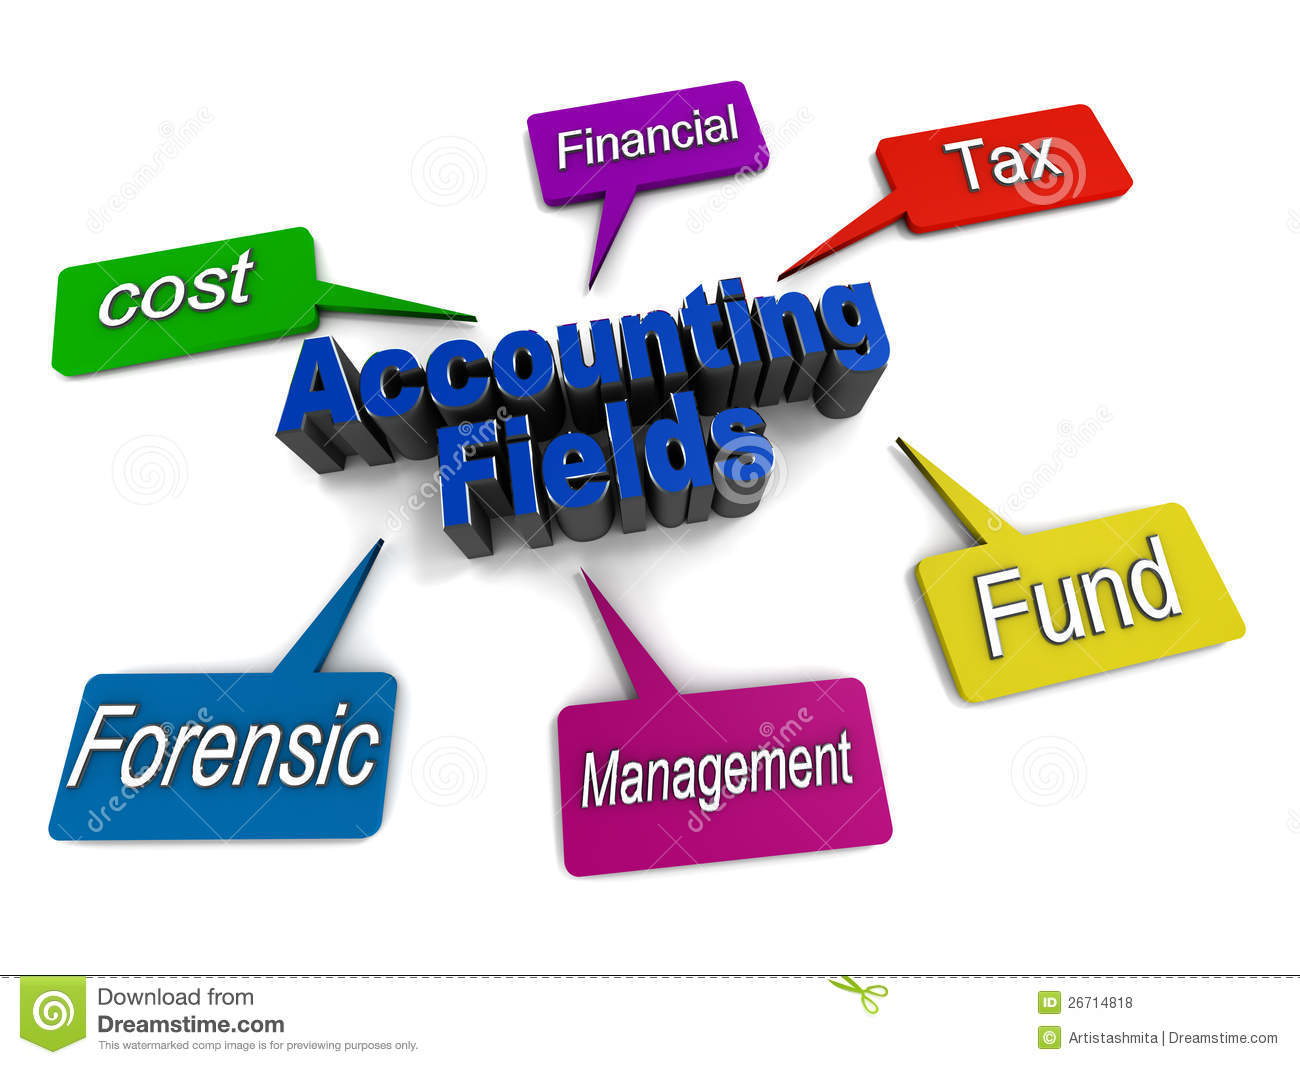 accounting fields royalty free stock photos image 26714818 free clipart accounting and finance free clipart accounting and finance